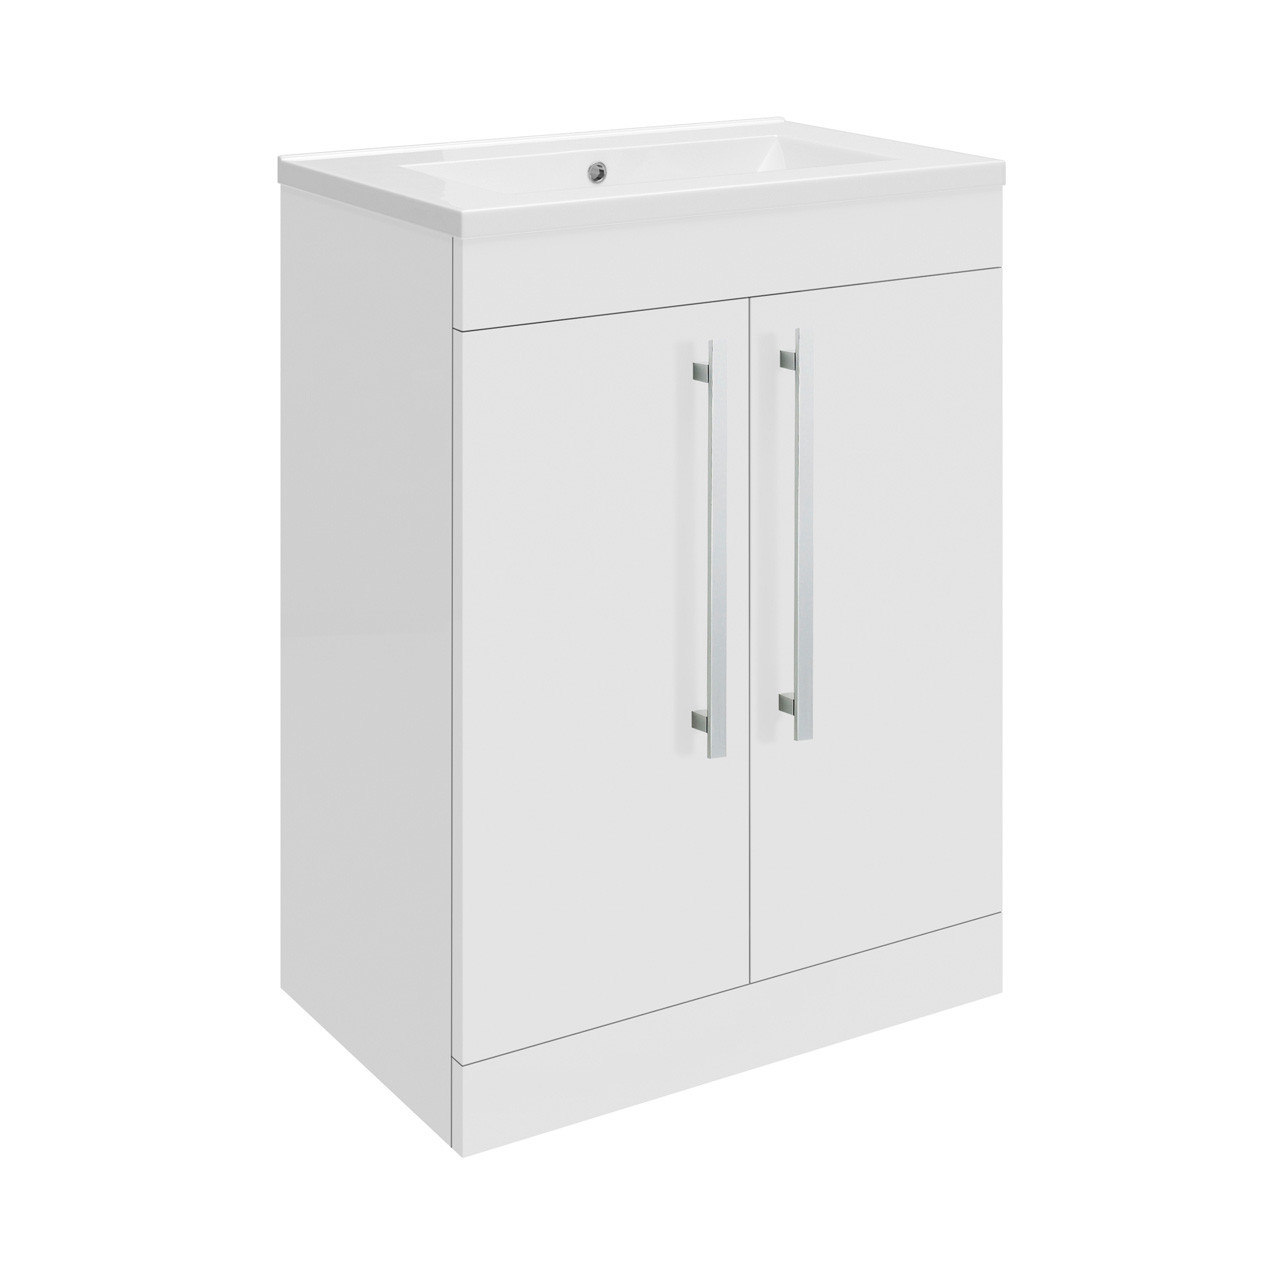 Premier Design Gloss White High Gloss White Floor Standing 600mm Cabinet & 40mm profile Basin - CAB330 & NVM013